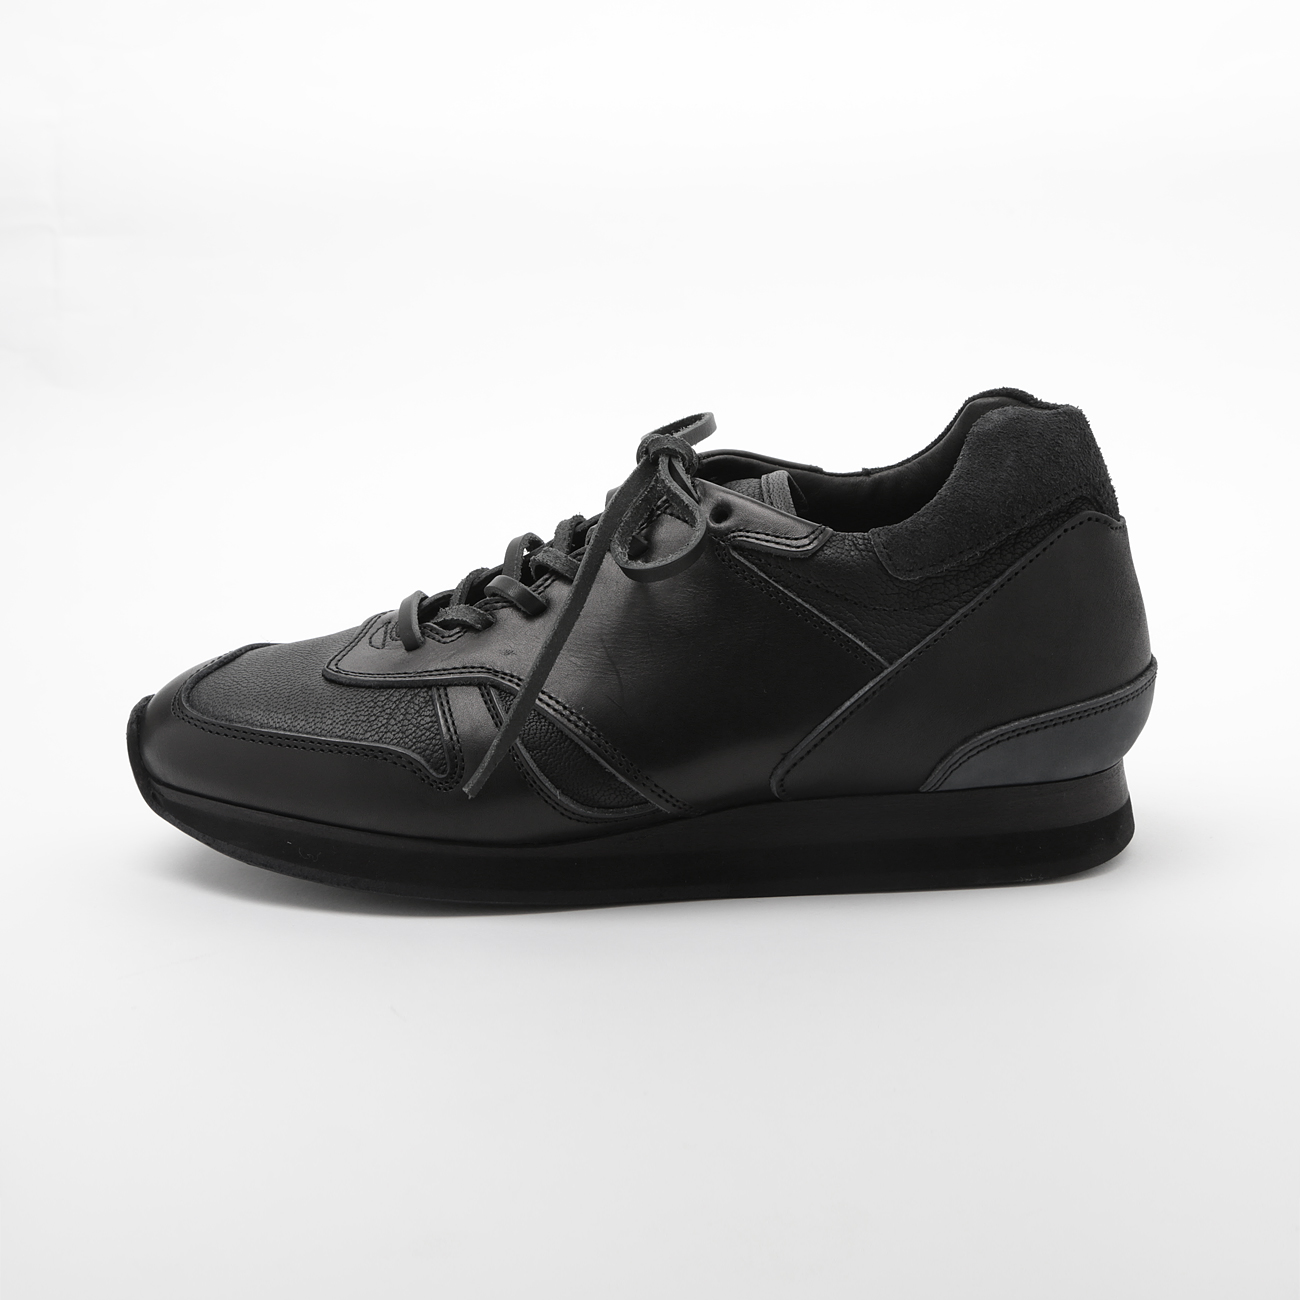 Hender Scheme - manual industrial products 08 - Black